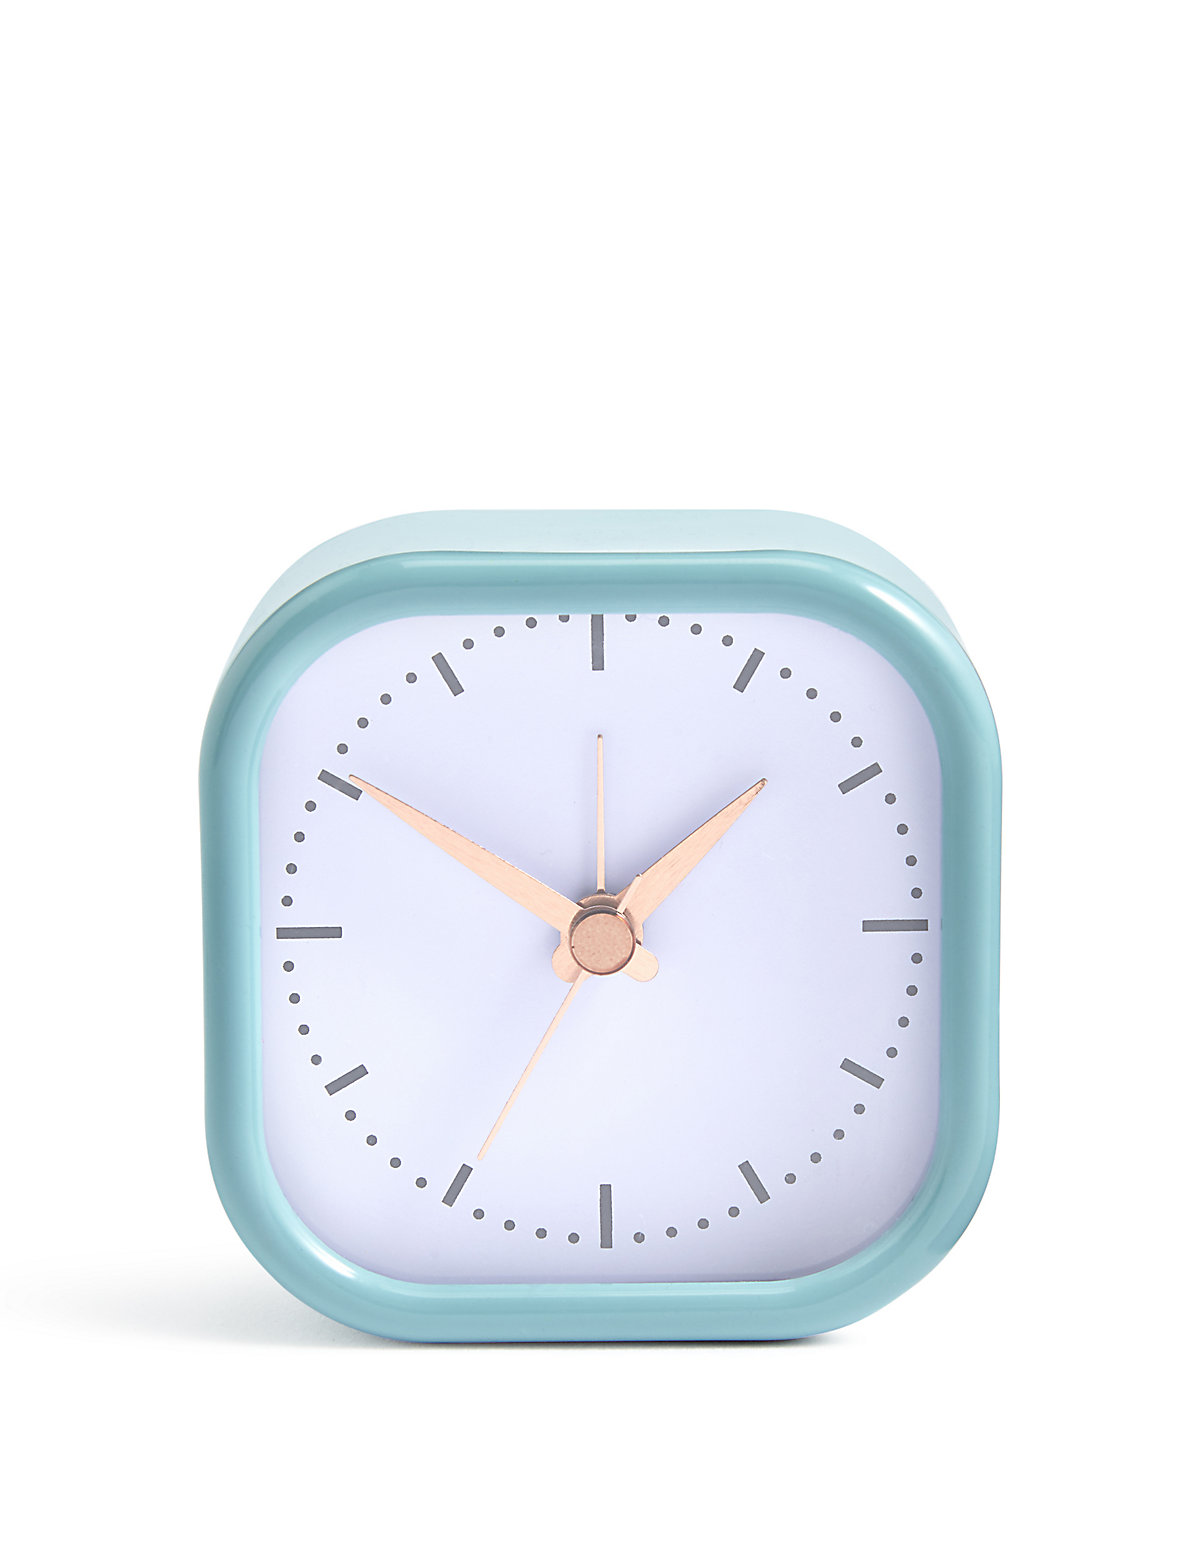 Image of LOFT Round Square Alarm Clock